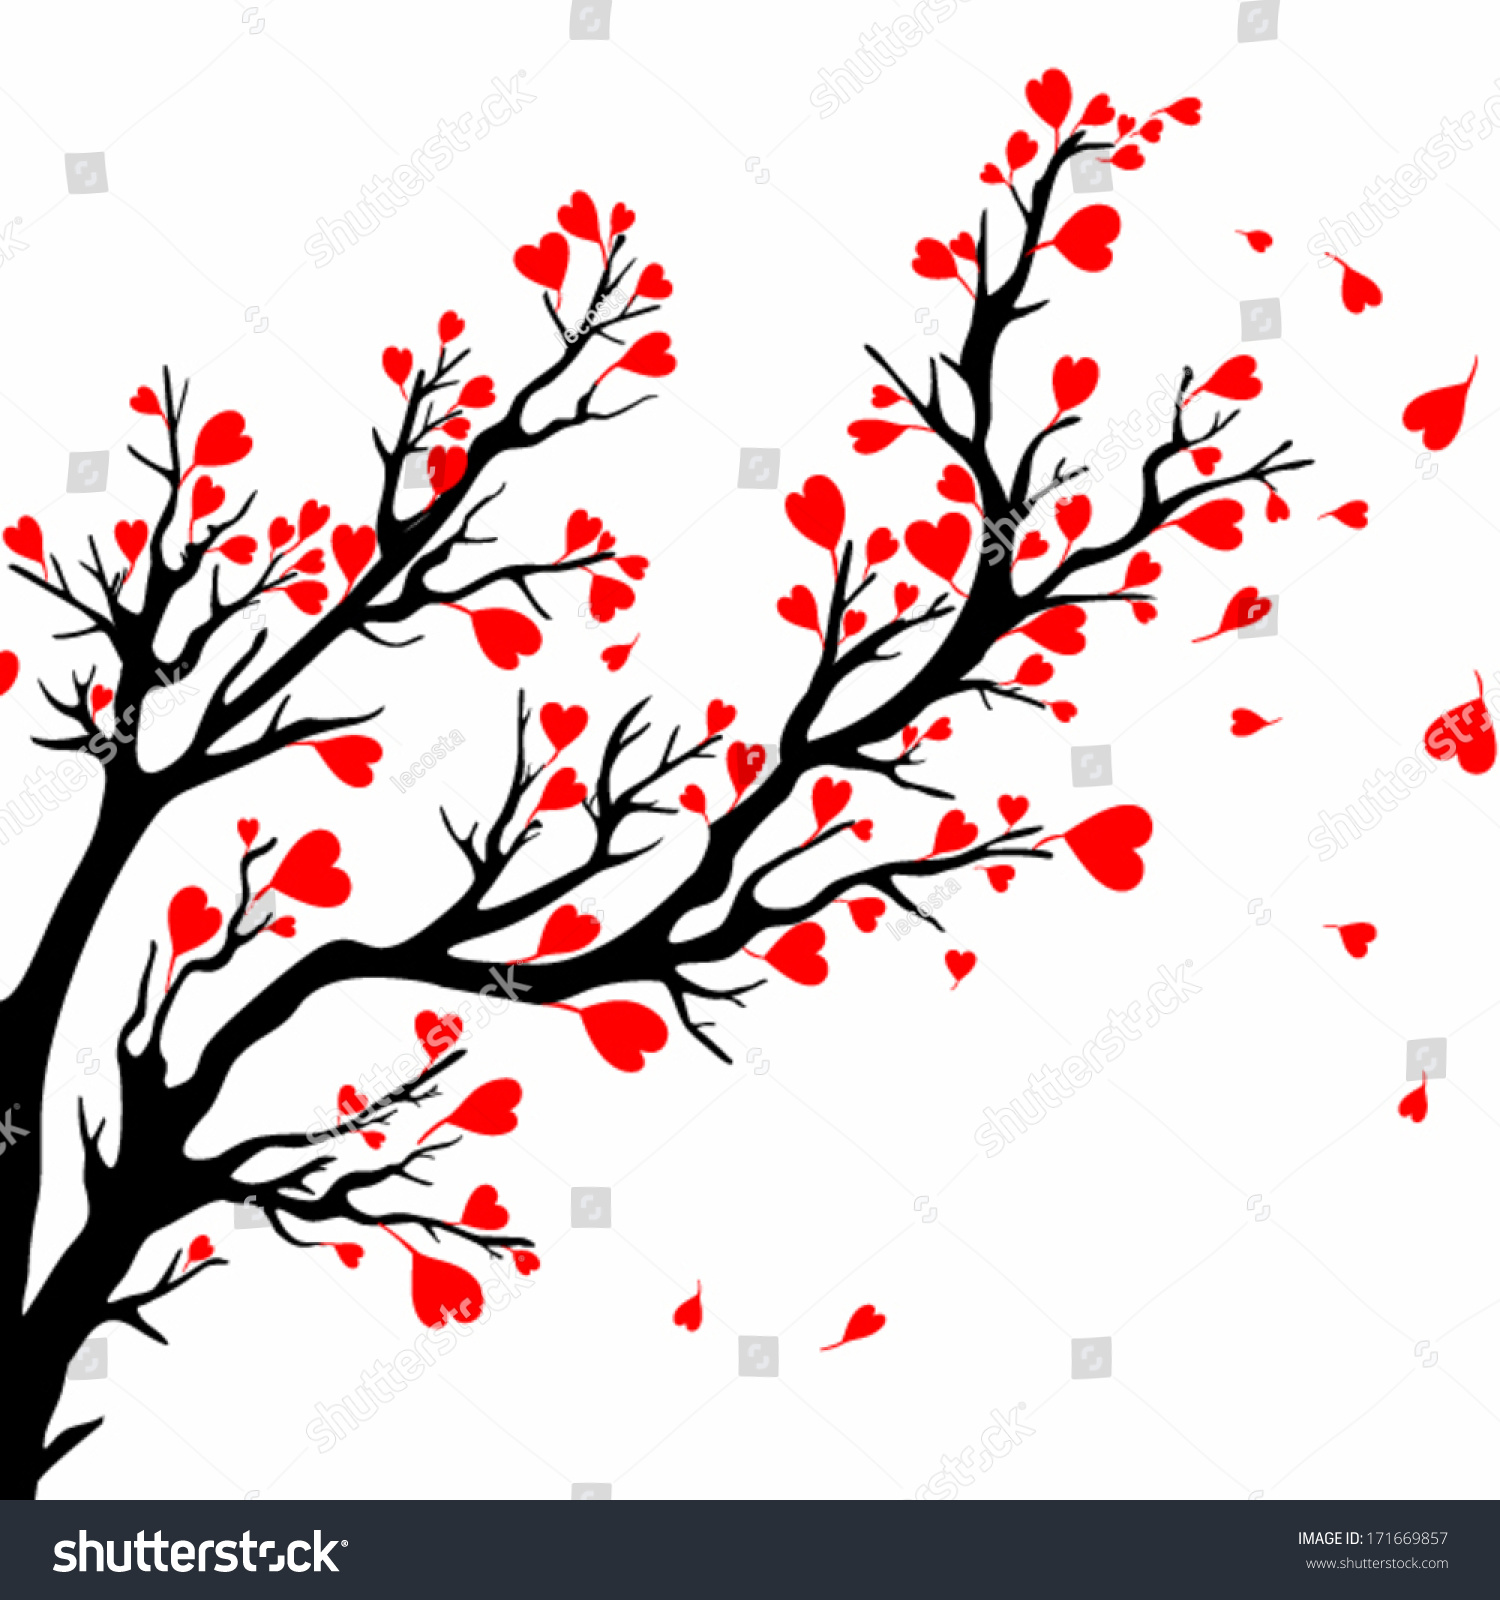 kissing birds in love at branch vector art download